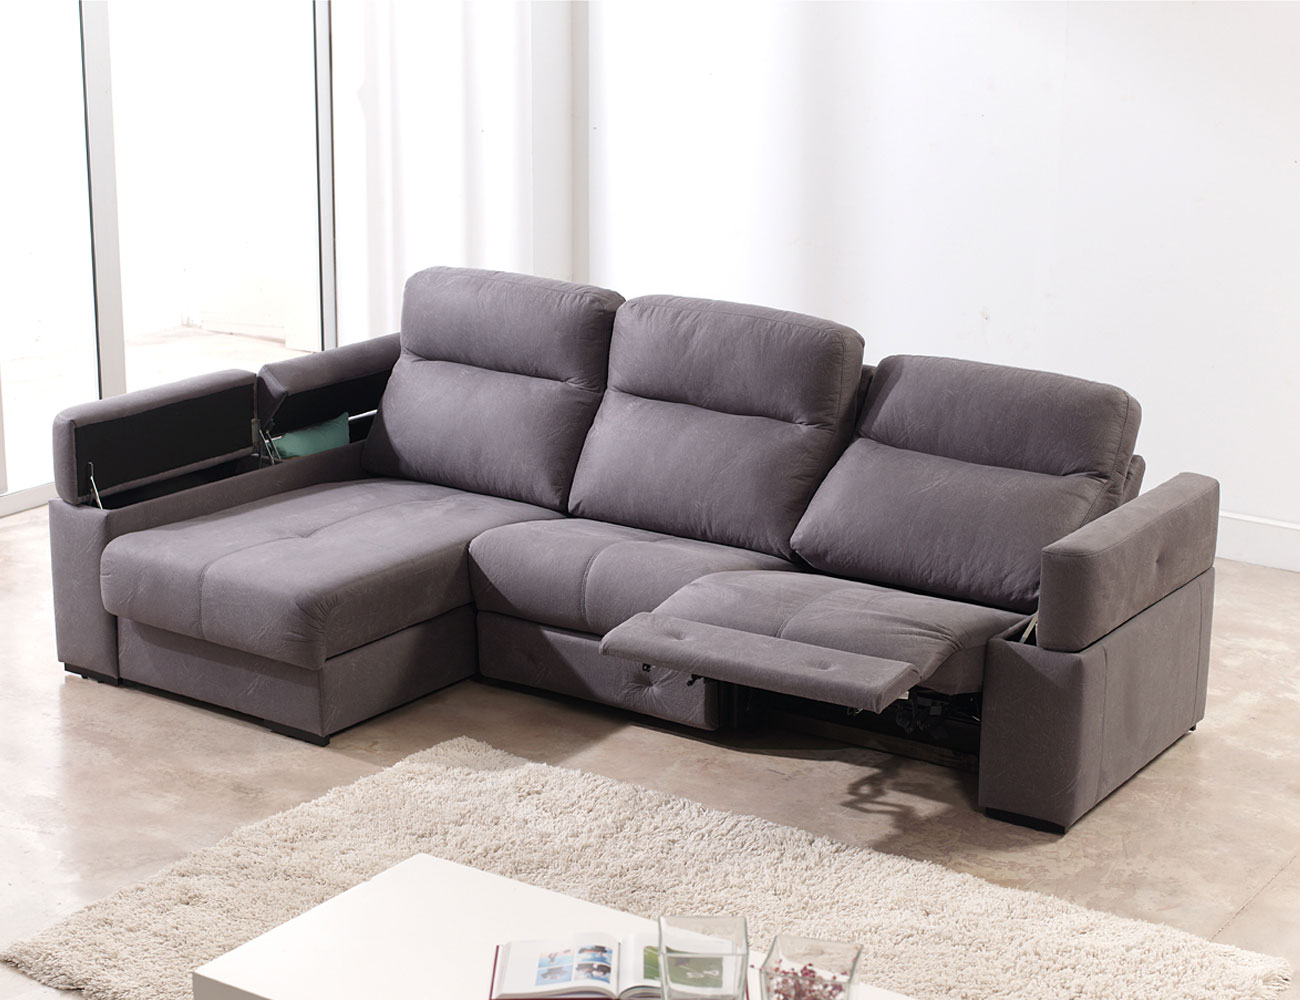 Sofa chaiselongue relax motor electrico 3 arcon 15